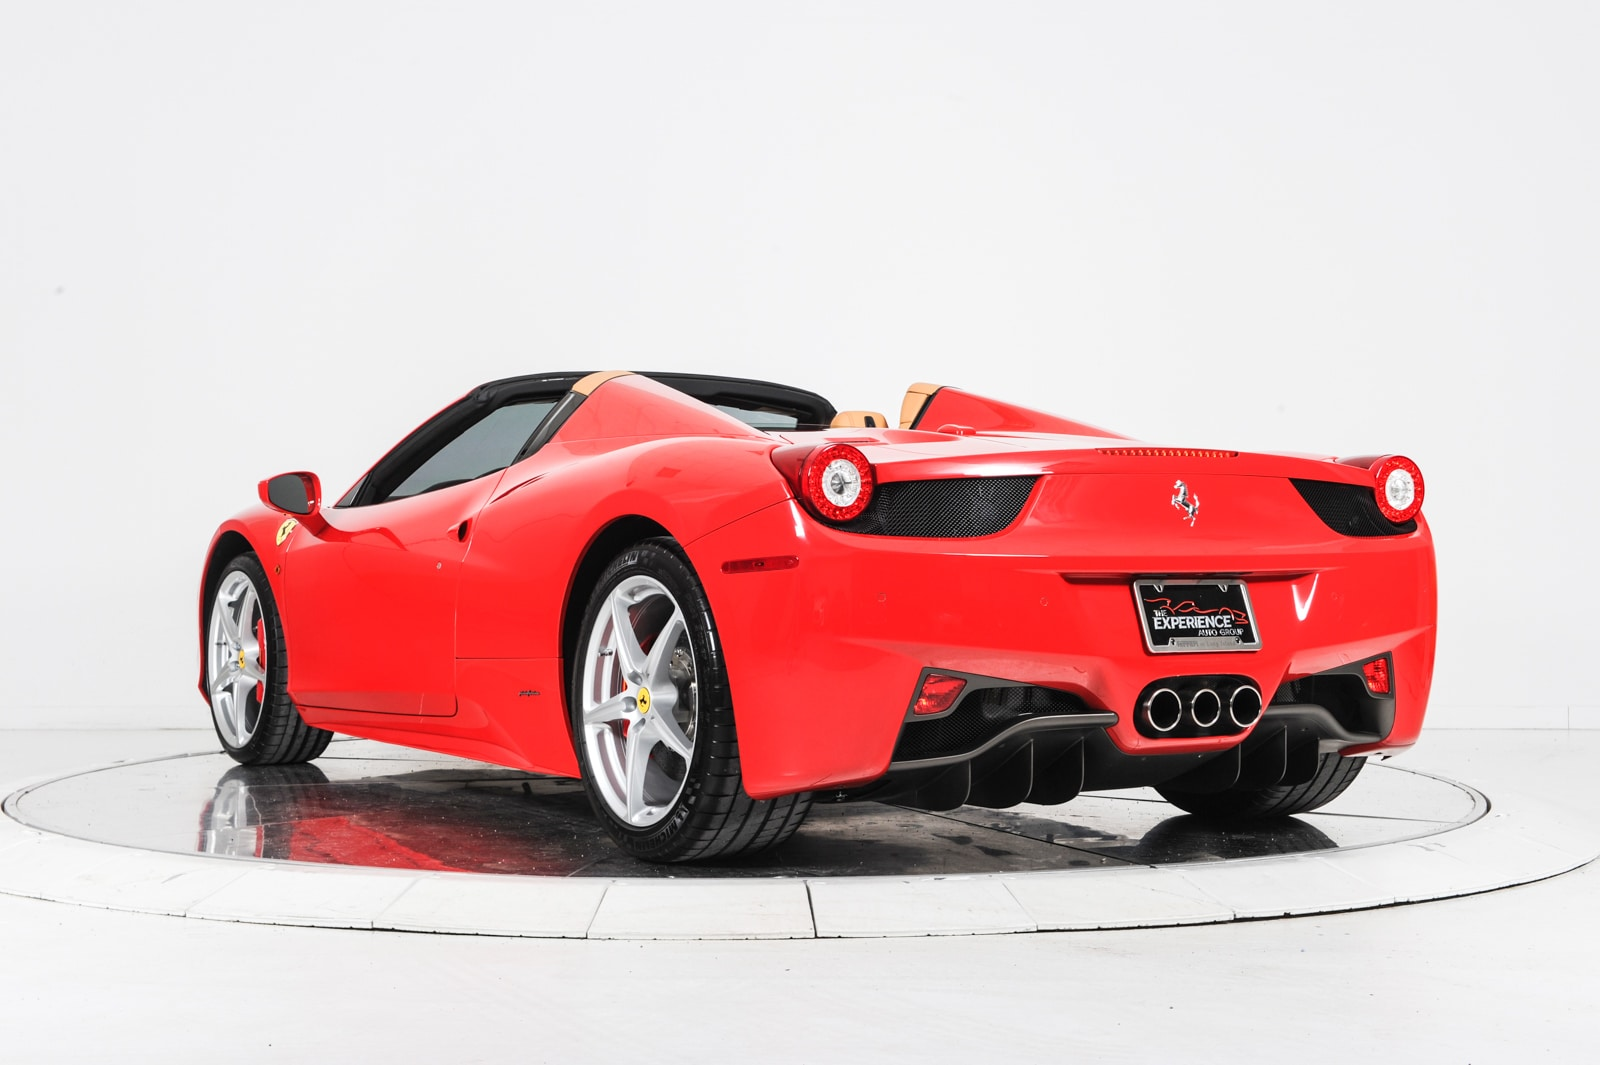 used 2012 ferrari 458 spider for sale plainview near long island ny vin zff68nha0c0188084. Black Bedroom Furniture Sets. Home Design Ideas